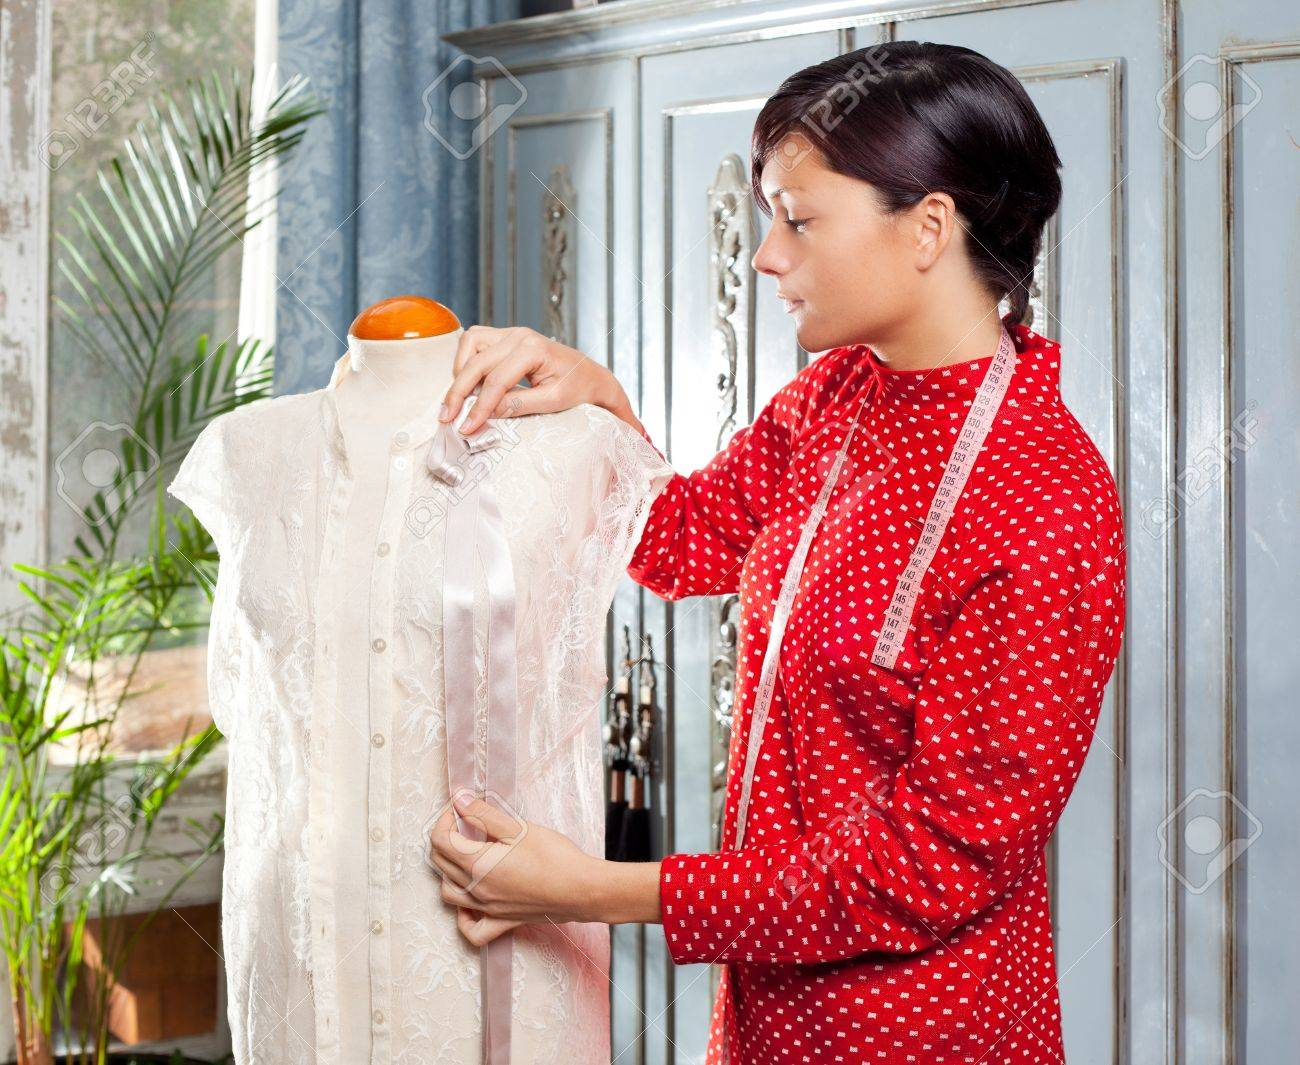 Dressmaker with mannequin as professional fashion designer Stock Photo - 12148095